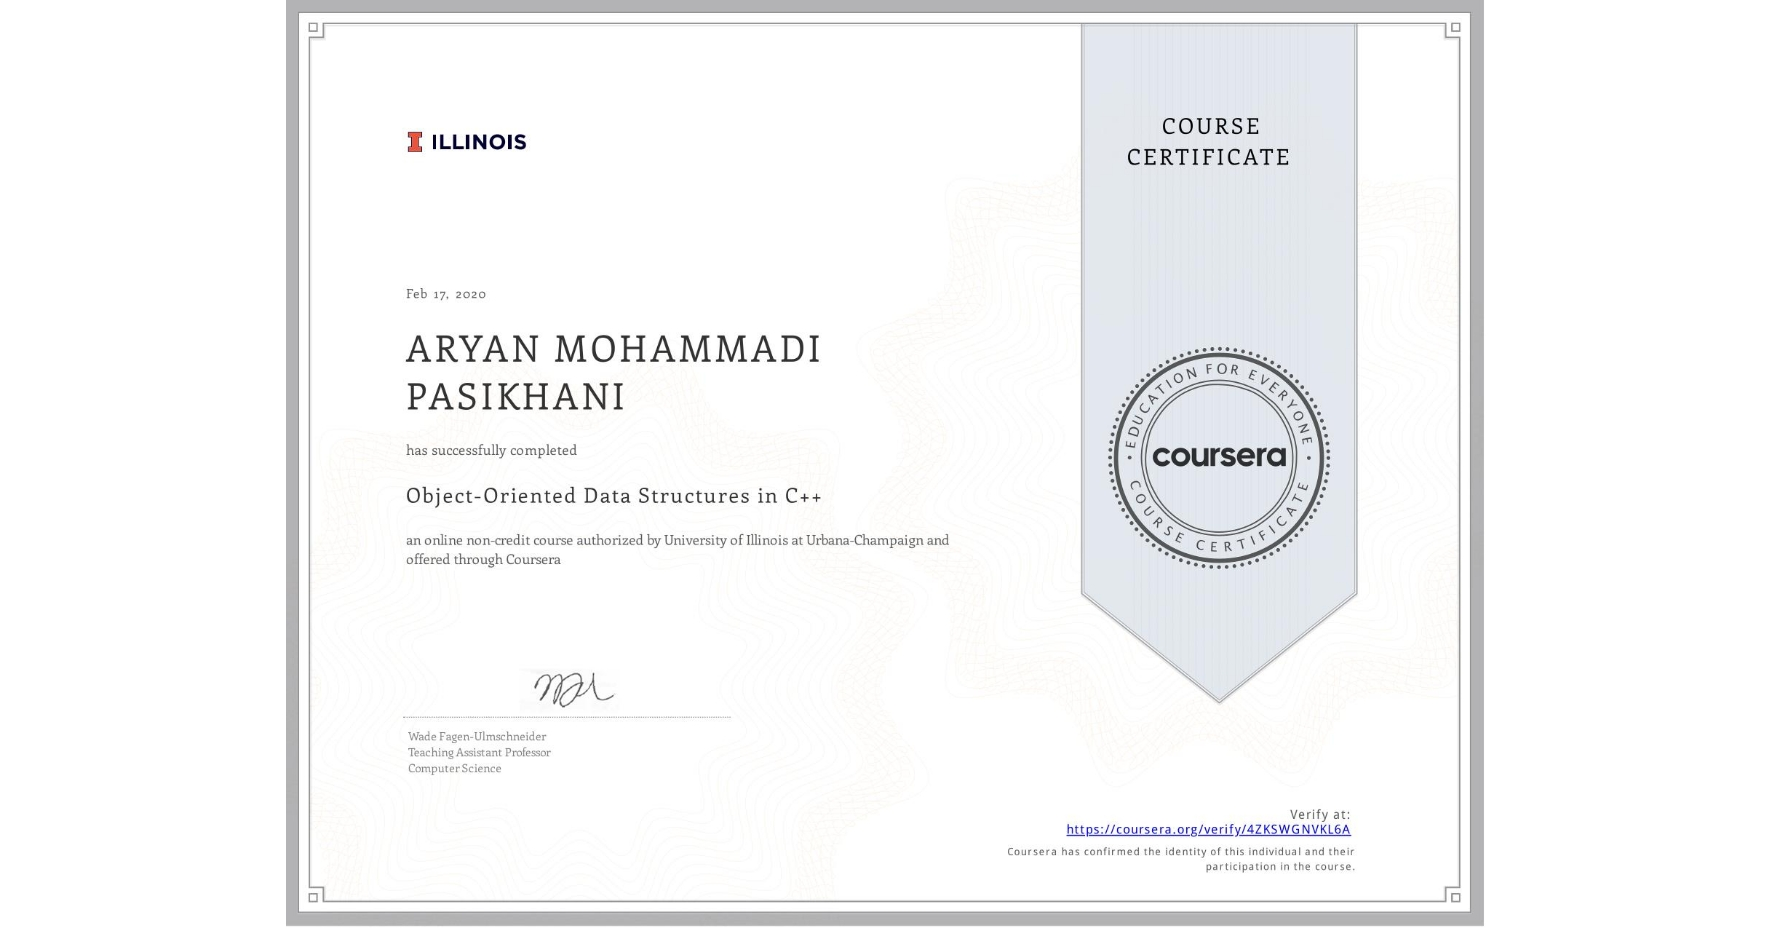 View certificate for ARYAN MOHAMMADI PASIKHANI, Object-Oriented Data Structures in C++, an online non-credit course authorized by University of Illinois at Urbana-Champaign and offered through Coursera